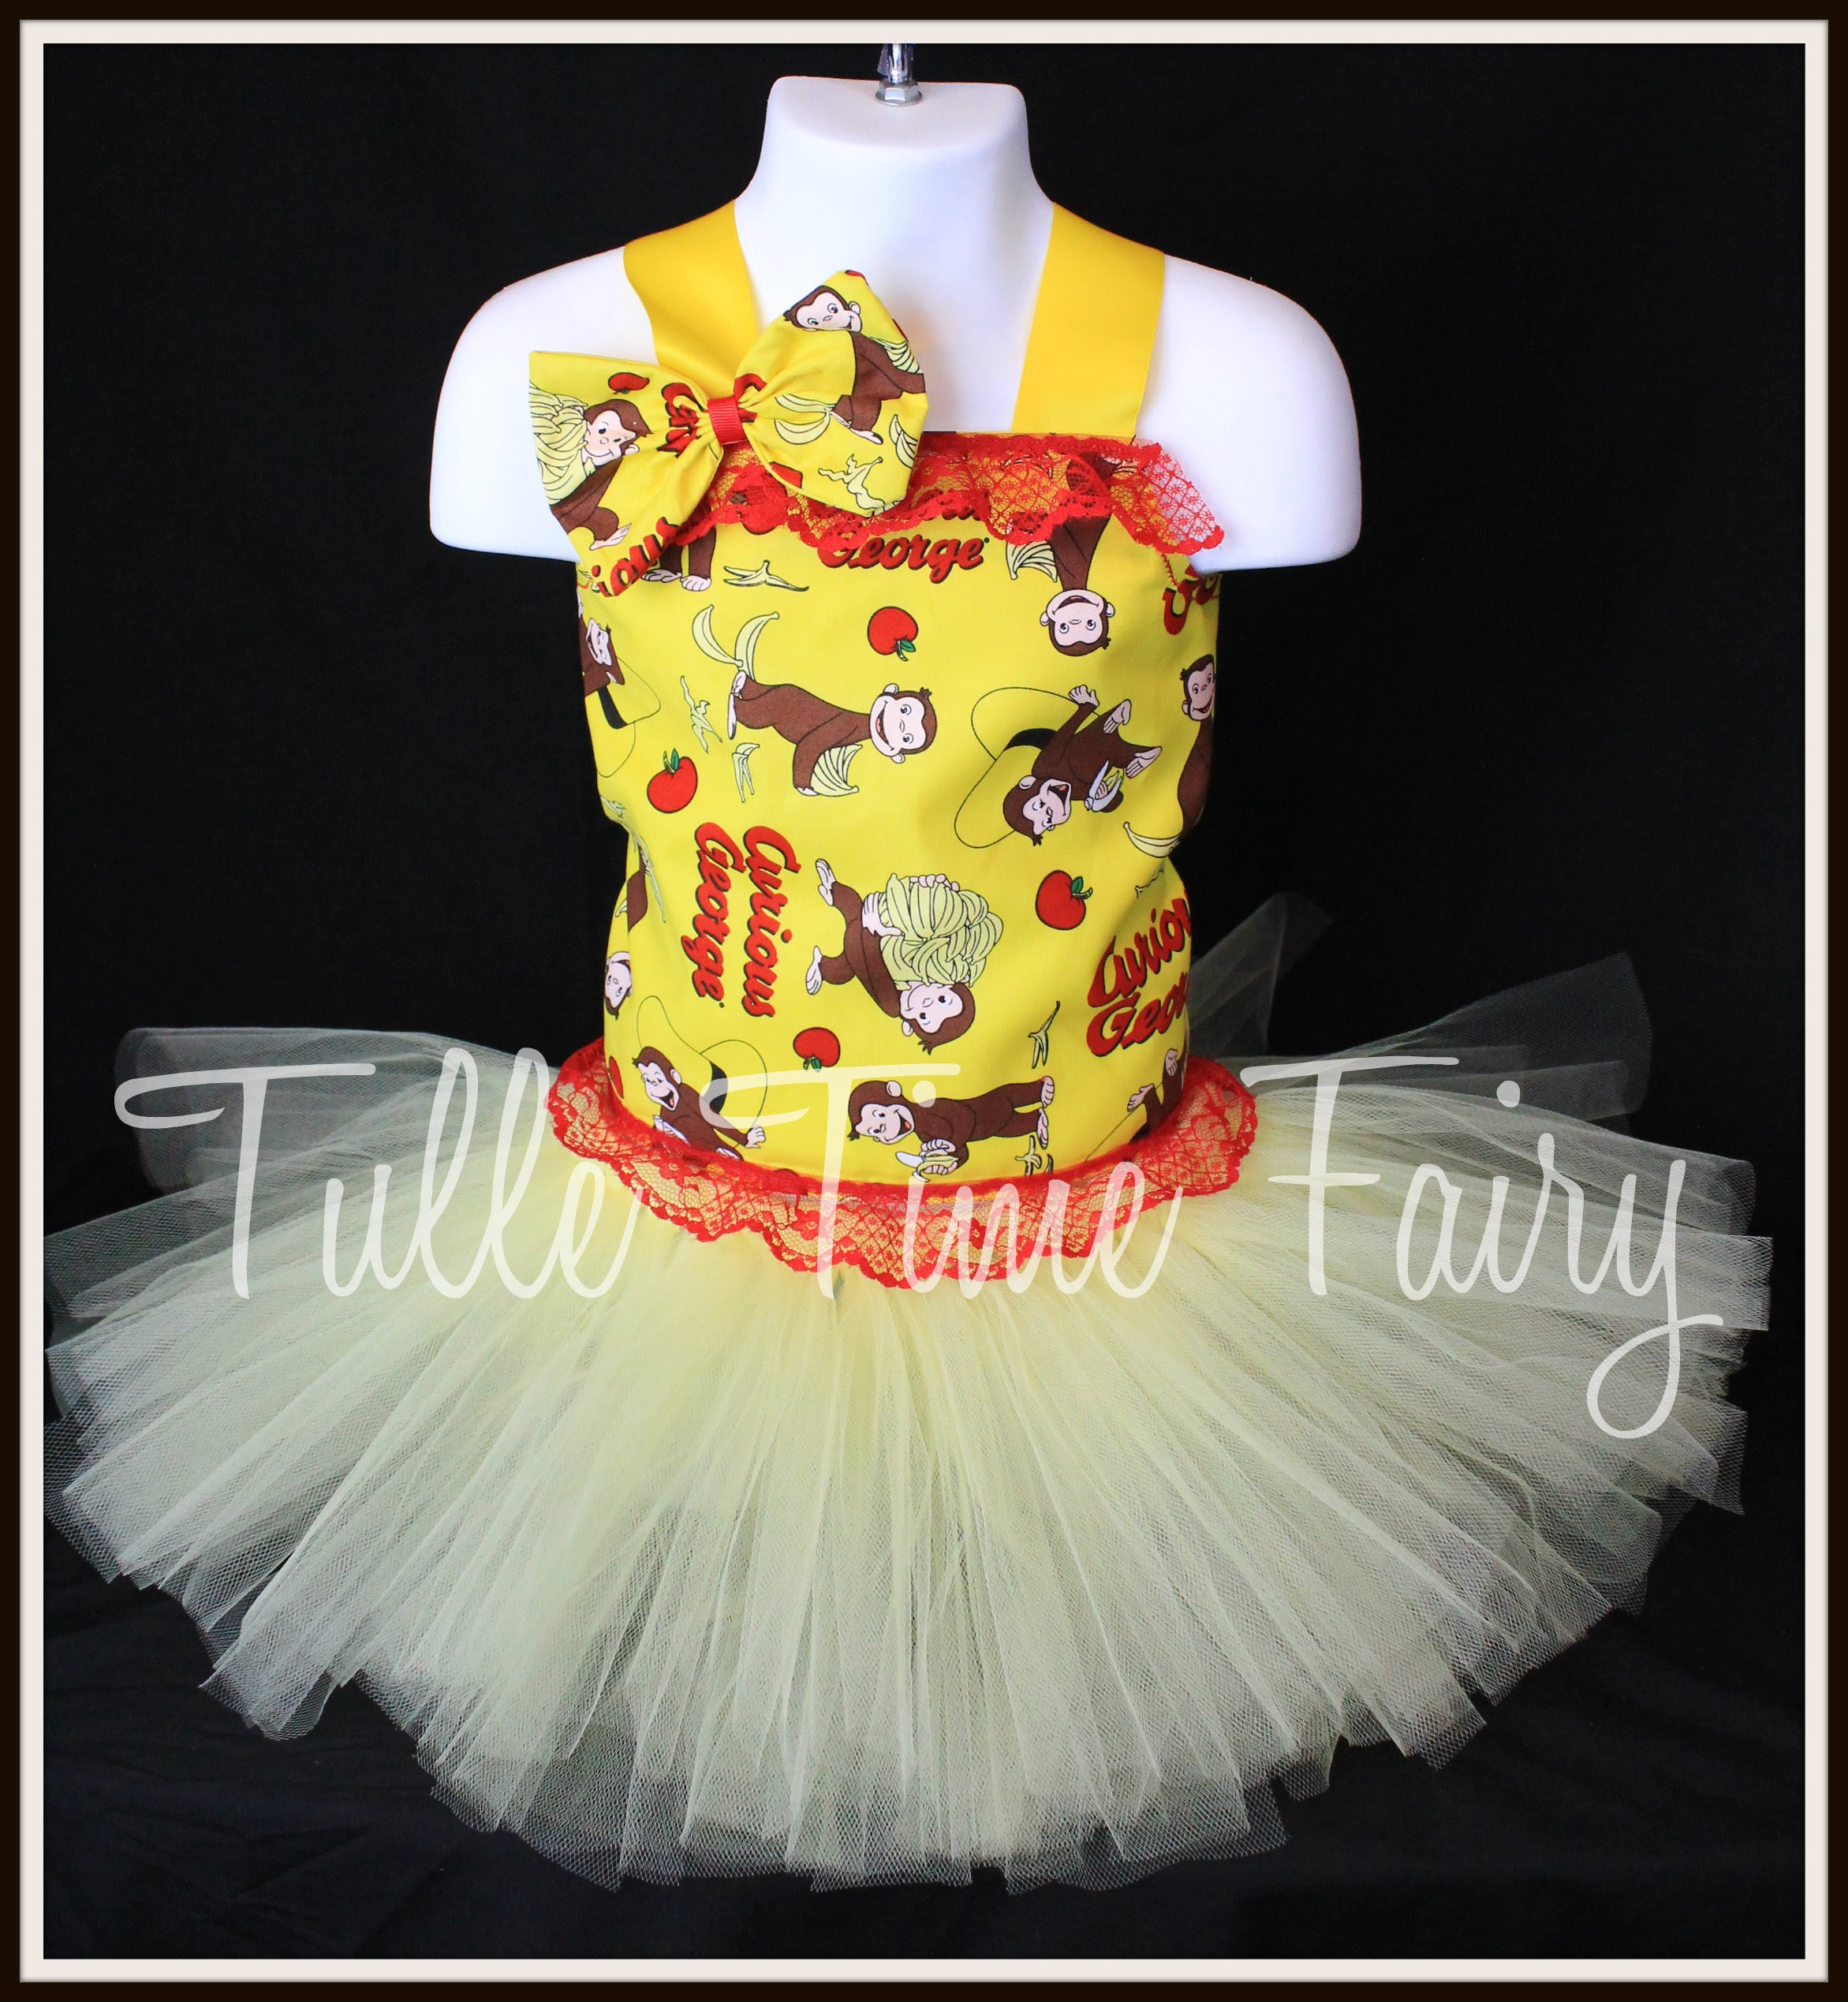 How to make a child's corset top using fabric and ribbon...